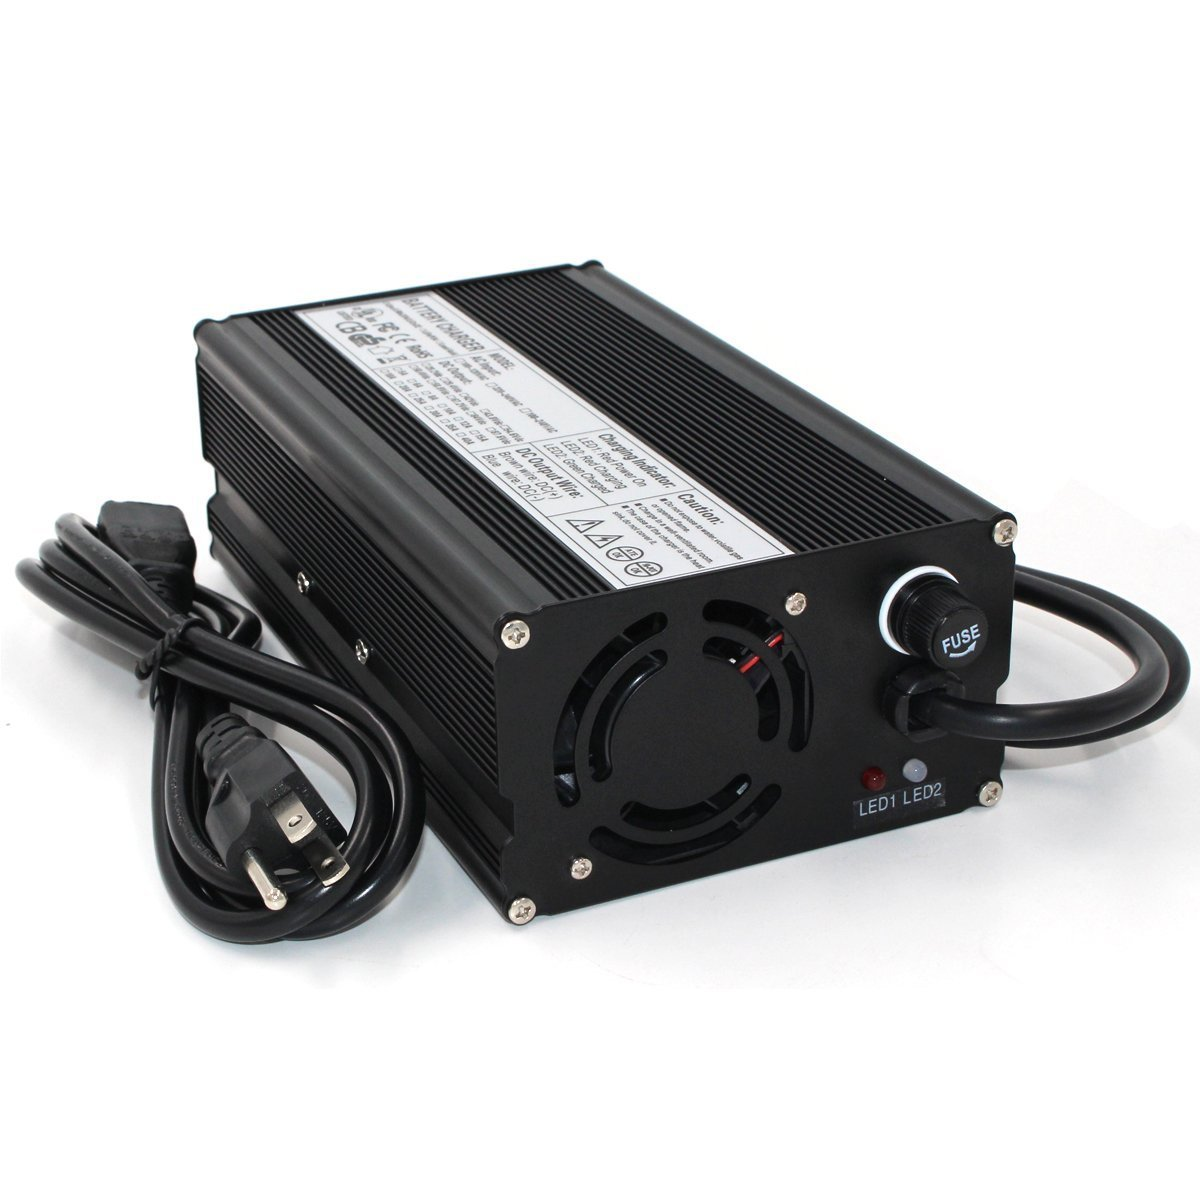 58.8V 10A Charger 58.8V Li-ion Battery Charger for 3S 58.8V 51.8V Lipo/LiMn2O4/LiCoO2 Battery Pack Quick Charge Fully Automatic